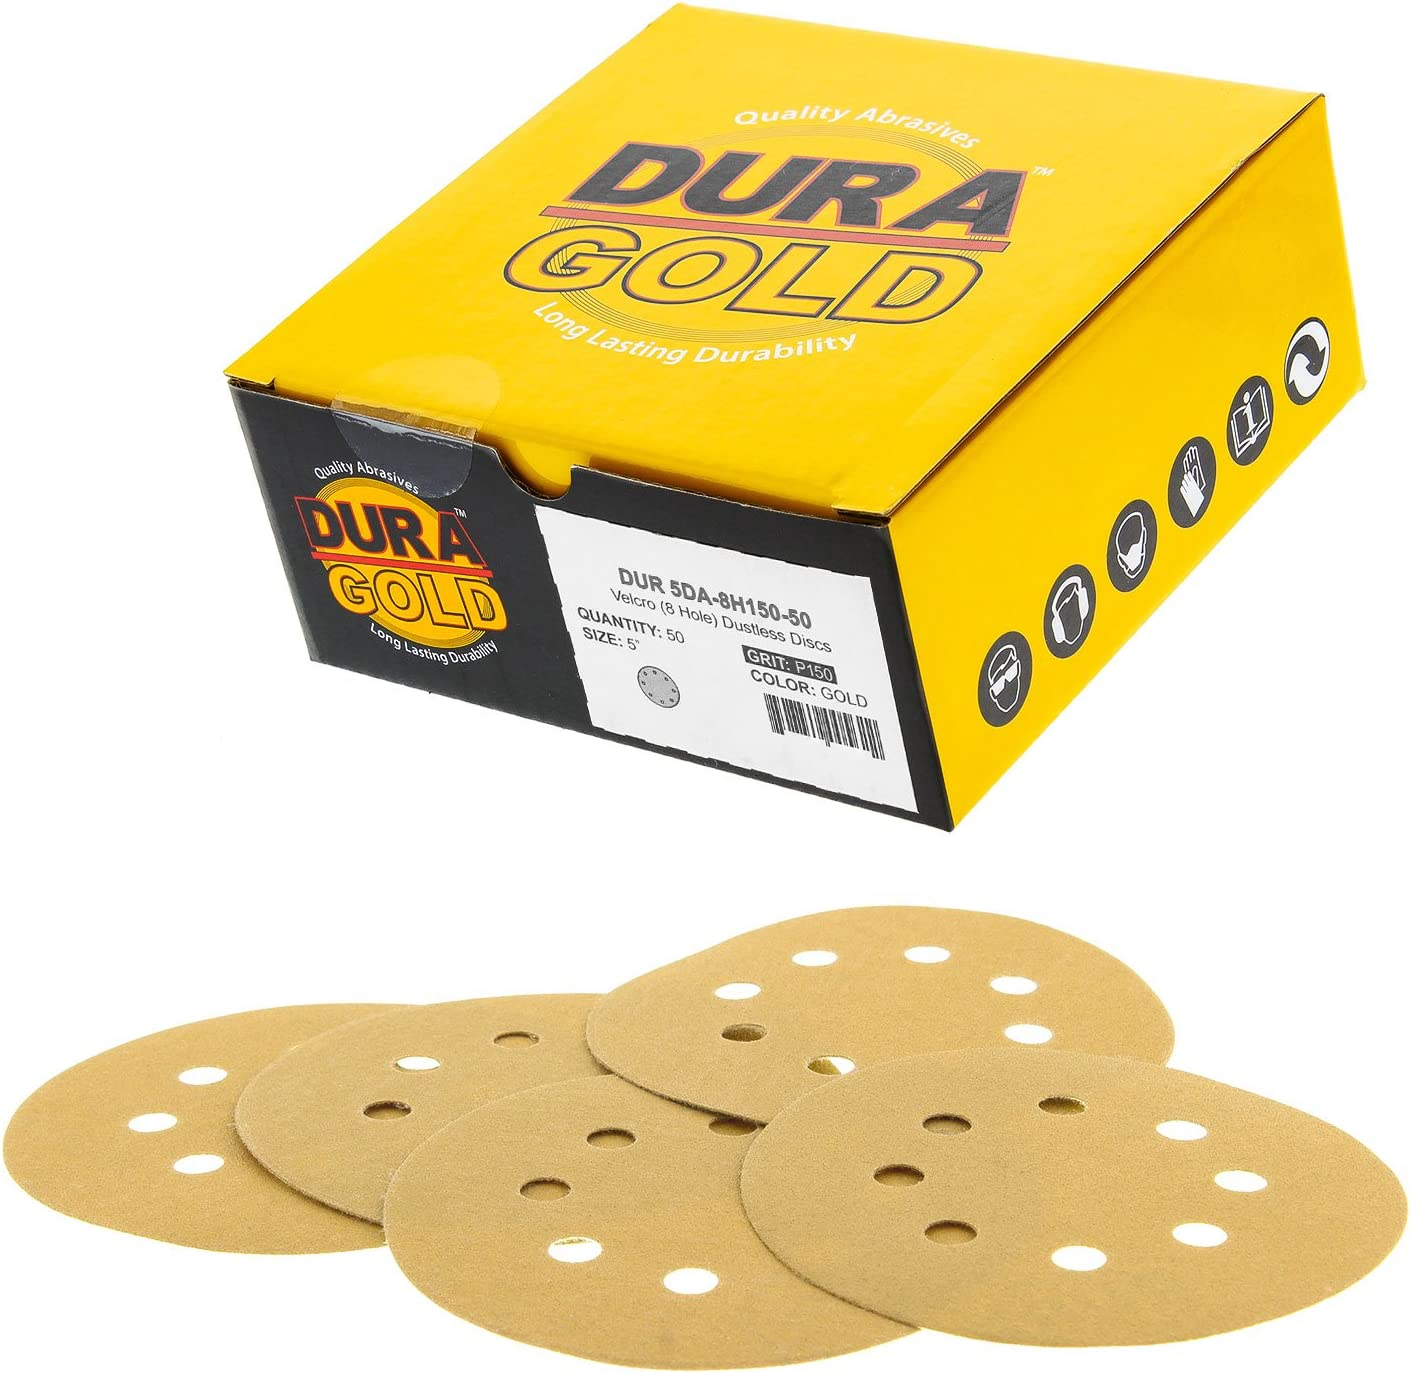 "Dura-Gold Premium - 150 Grit - 5"" Gold Sanding Discs - 8-Hole Dustless Hook and Loop for DA Sander - Box of 50 Finishing Sandpaper Discs for Woodworking or Automotive 71Q5YwmW0QL"